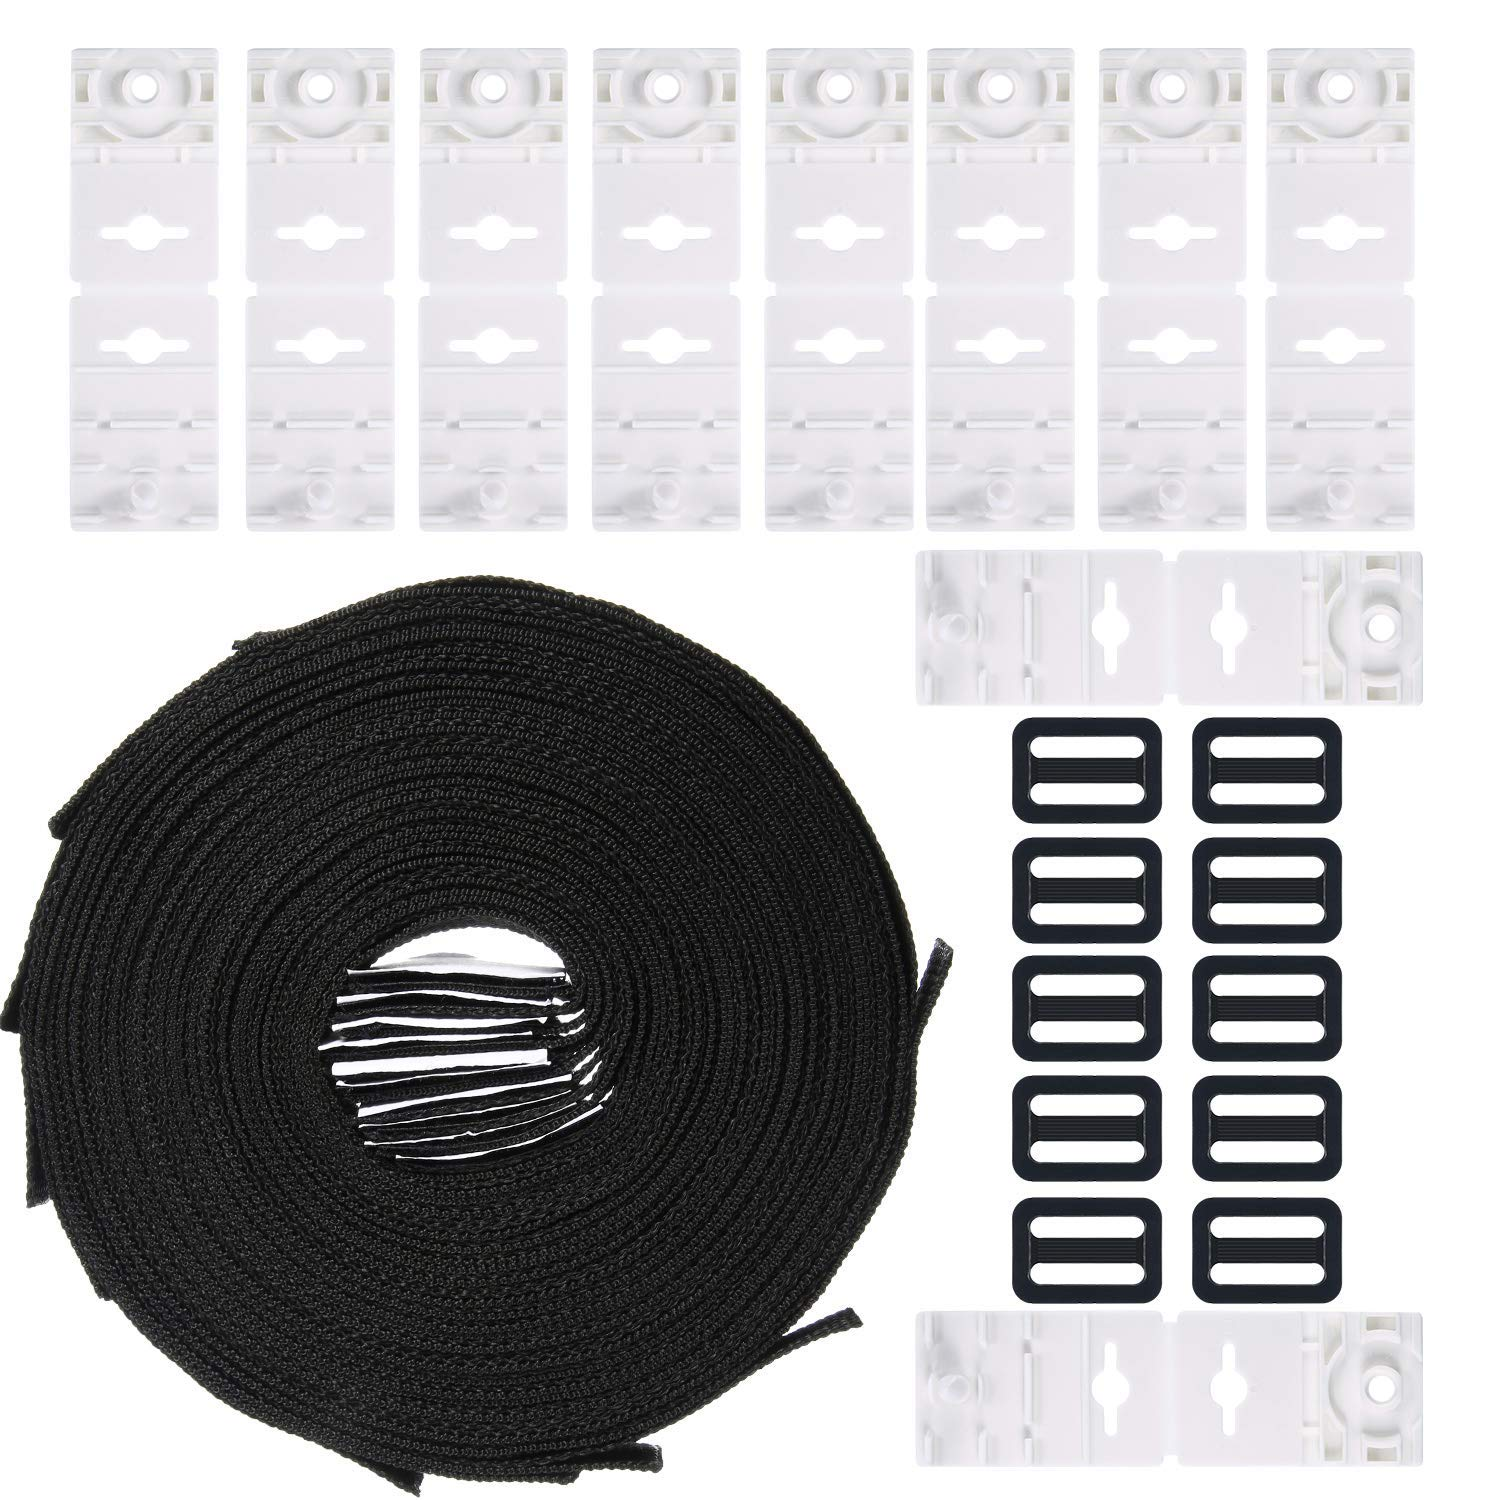 Tatuo Solar Cover Reel Attachment Kit, 10 Each of Pool Solar Cover Reel Straps Buckles and Fastener Plates for in-Ground Swimming Pool